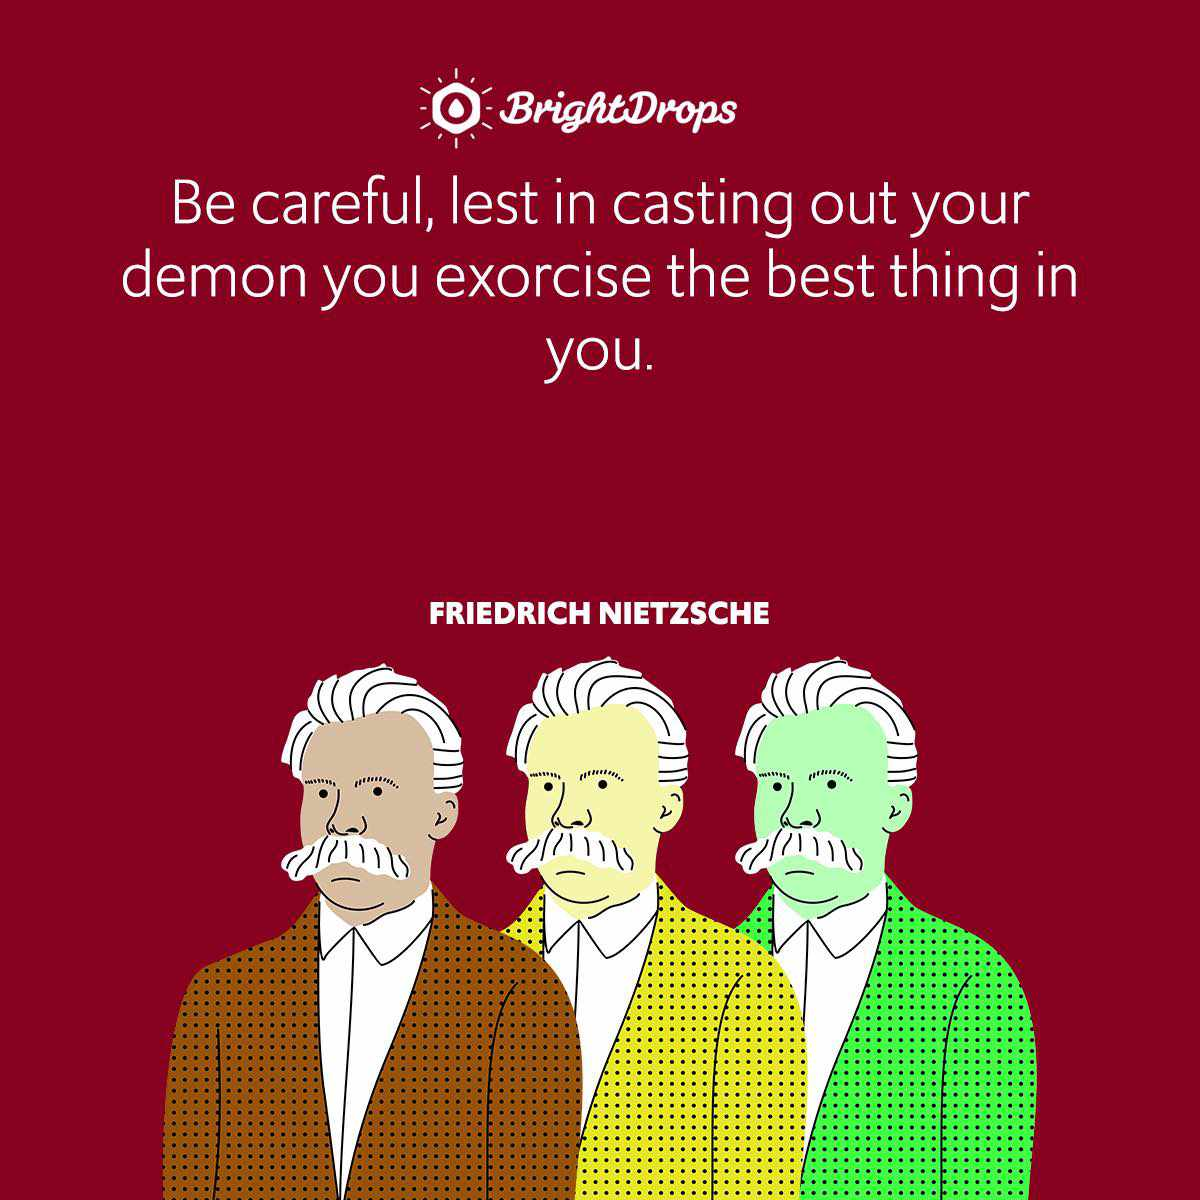 Be careful, lest in casting out your demon you exorcise the best thing in you.